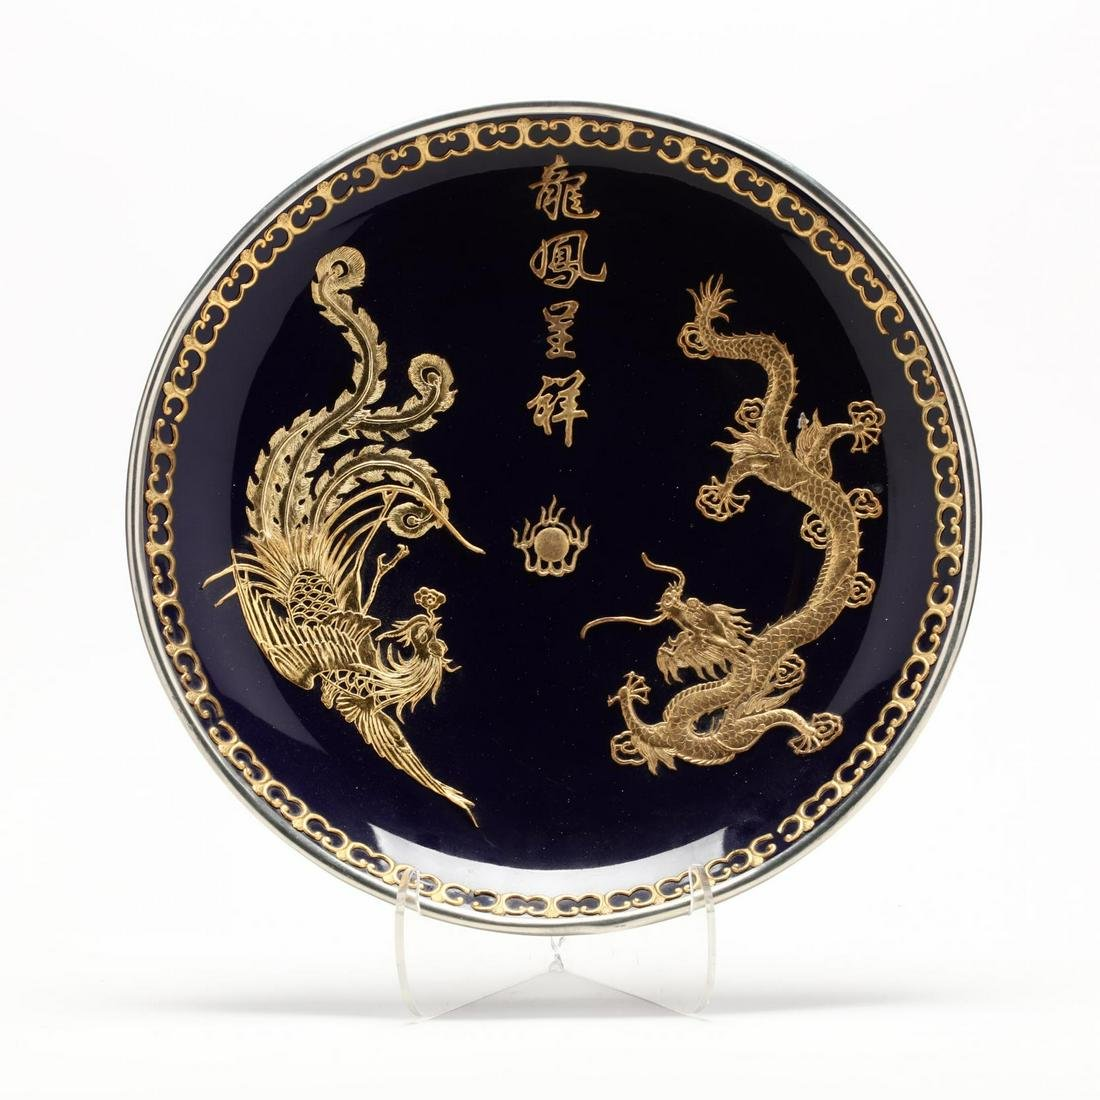 A Presentation Chinese Charger with Dragon and Phoenix